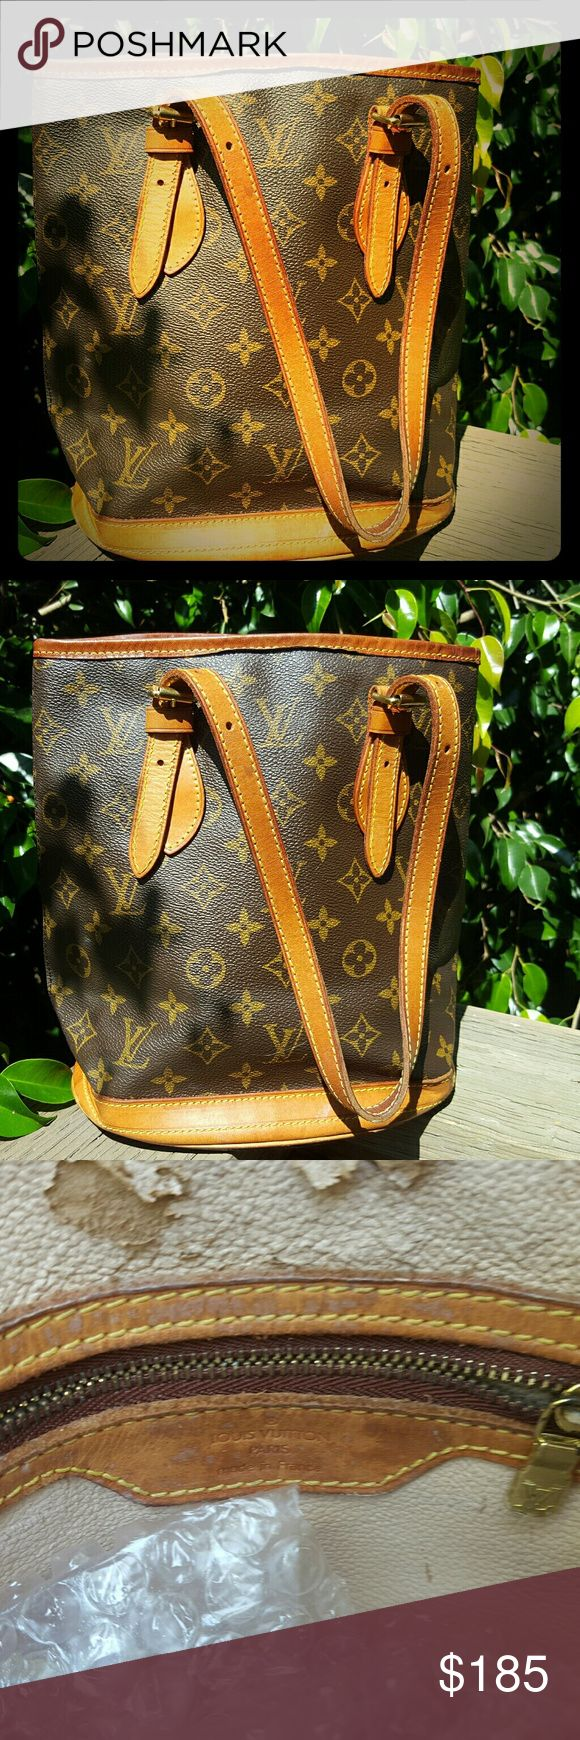 Louis Vuitton bucket bag p.m. in good condition outside but inside stickiness and peeling. Louis Vuitton Bags Shoulder Bags